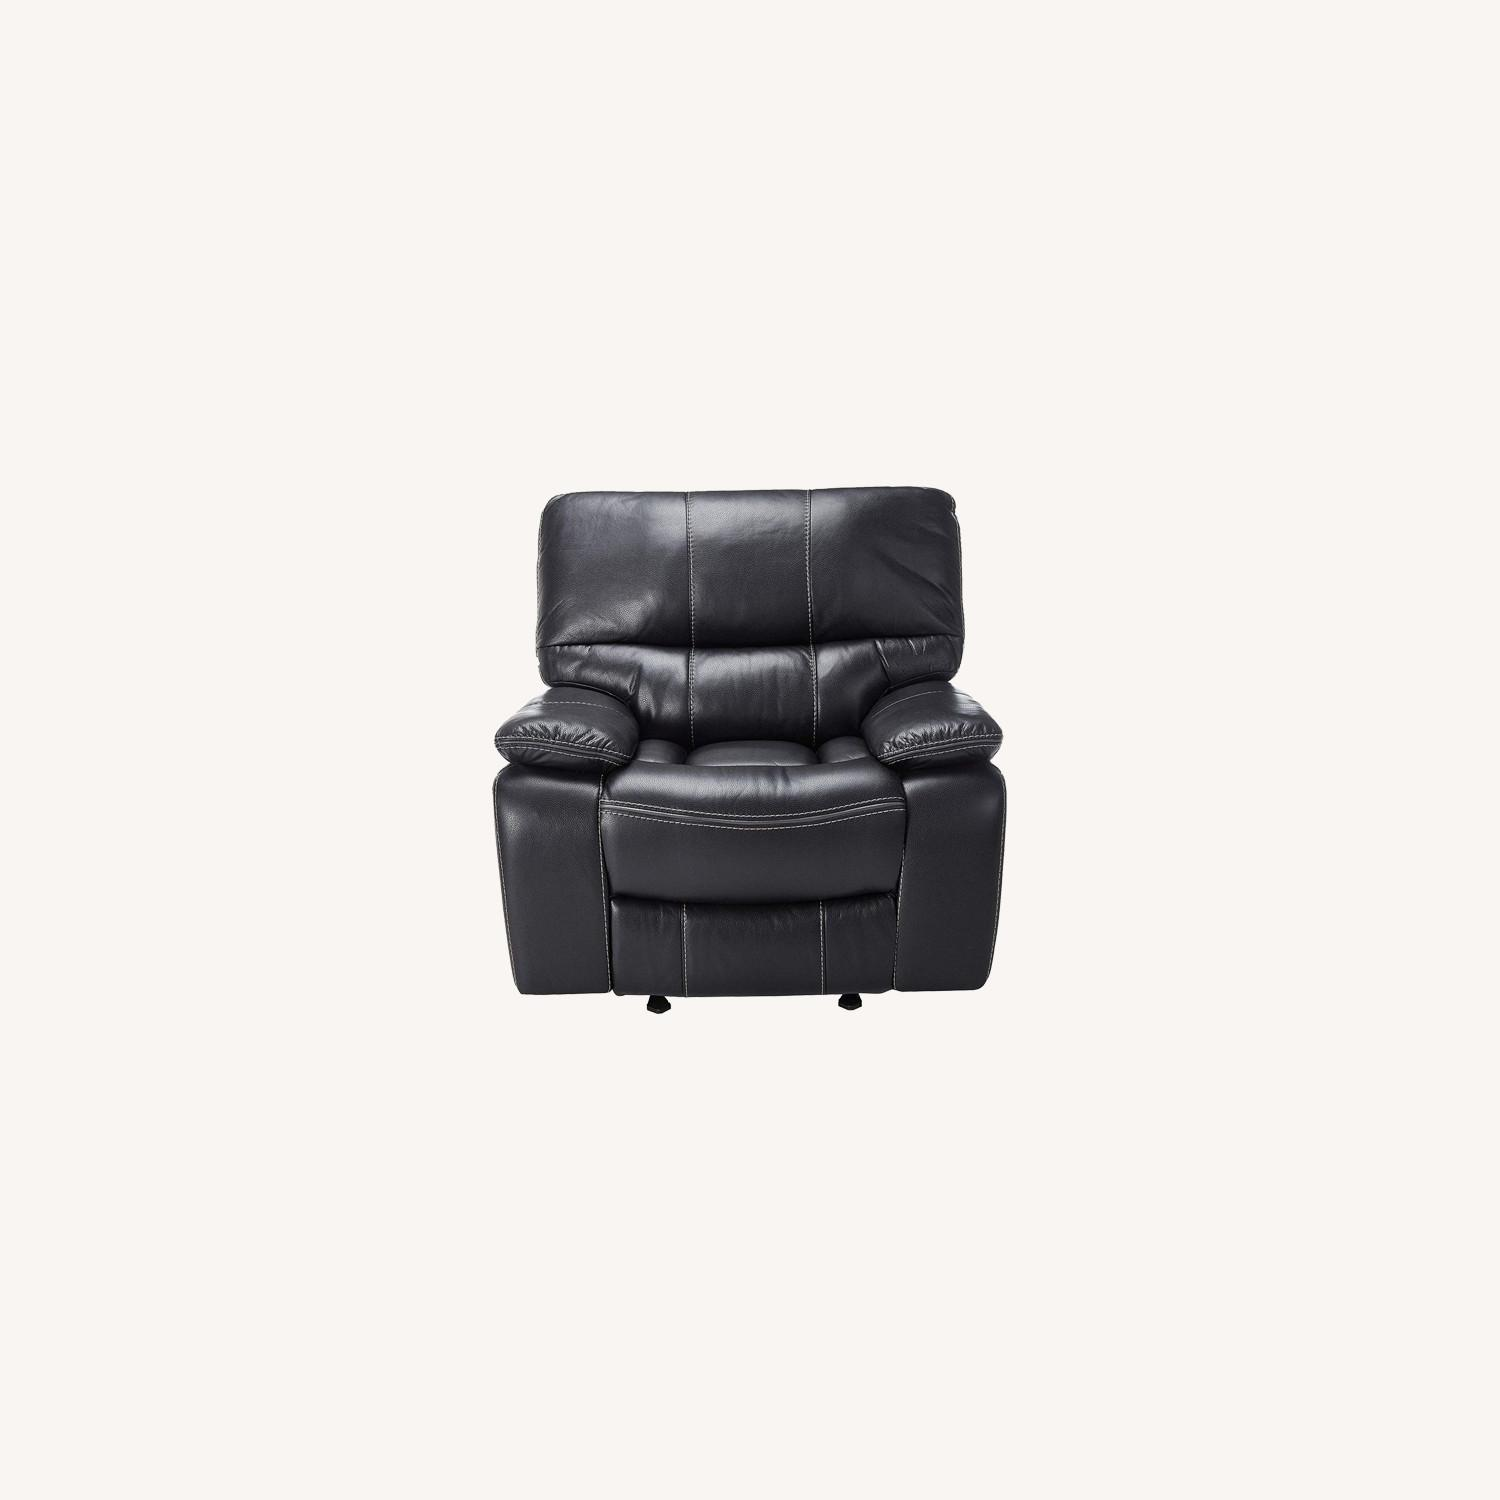 Glider Recliner W/ Scooped Seating In Black Finish - image-6